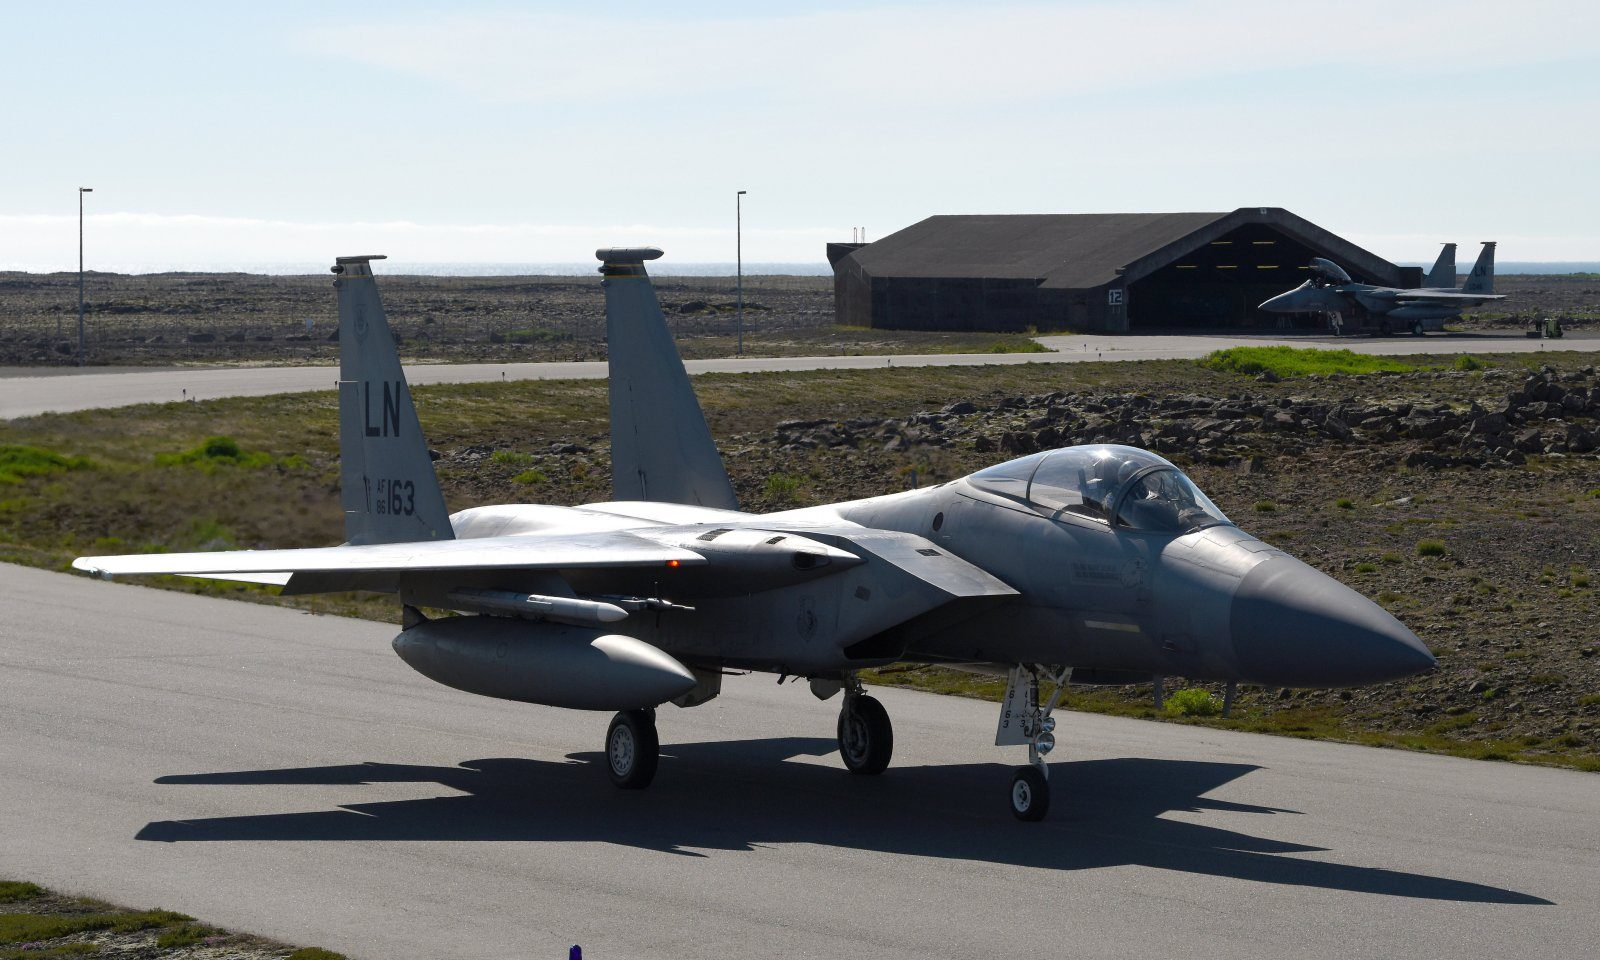 An F-15C Eagle assigned to the 493rd Expeditionary Fighter Squadron taxis down the flightline at Keflavik Air Base, Iceland, Aug. 1, 2018, in support of NATO's Icelandic Air Surveillance mission. NATO allies deploy aircraft and personnel to support this critical mission three times a year, with the U.S. responsible for at least one rotation annually. (U.S. Air Force photo/Staff Sgt. Alex Fox Echols III)